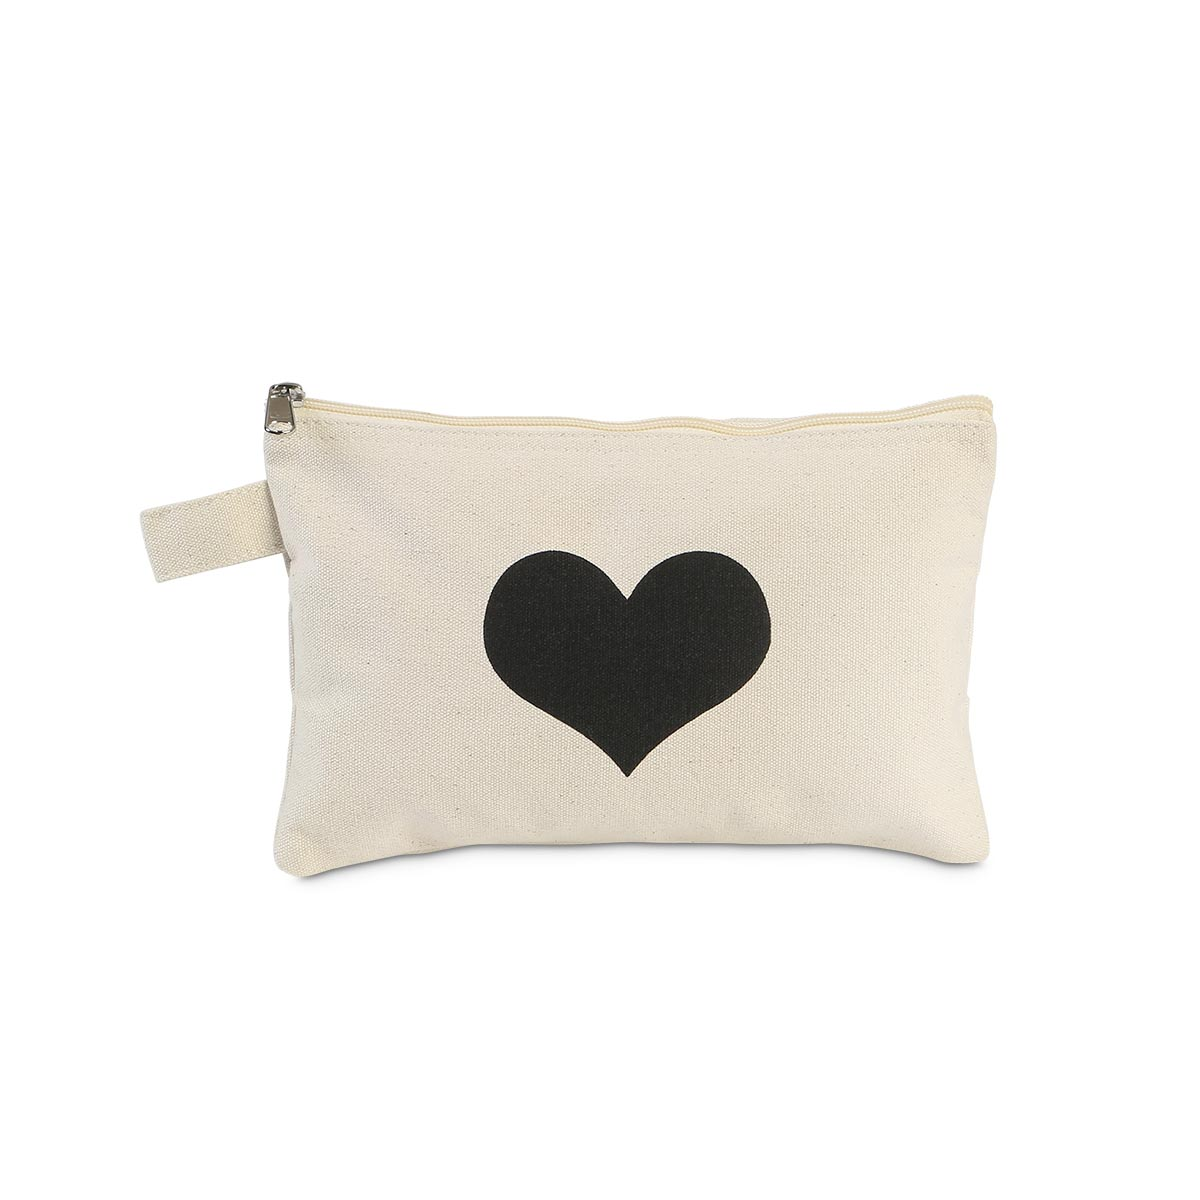 zipper bag printed heart